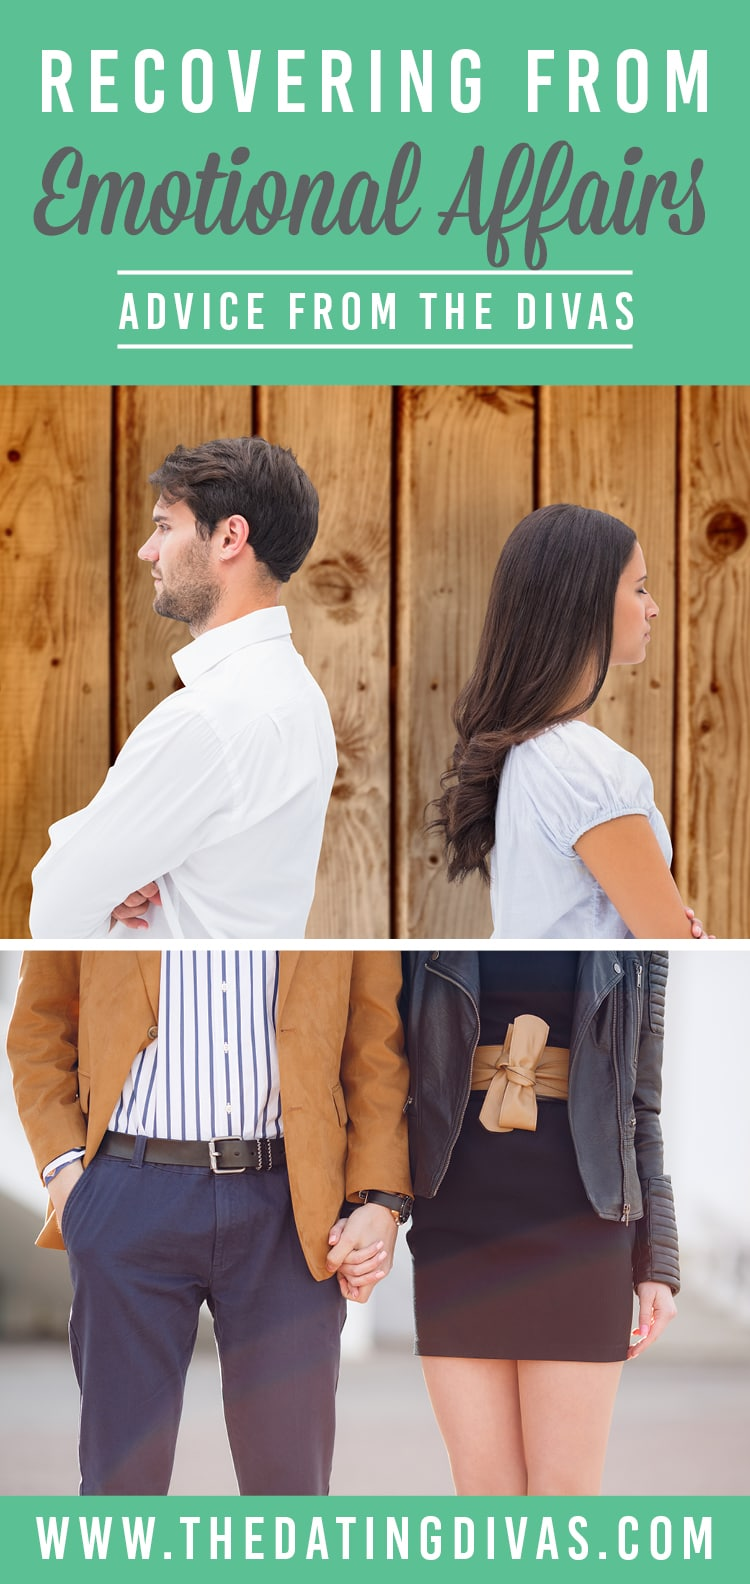 Fabulous tips about recovering from an emotional affair.